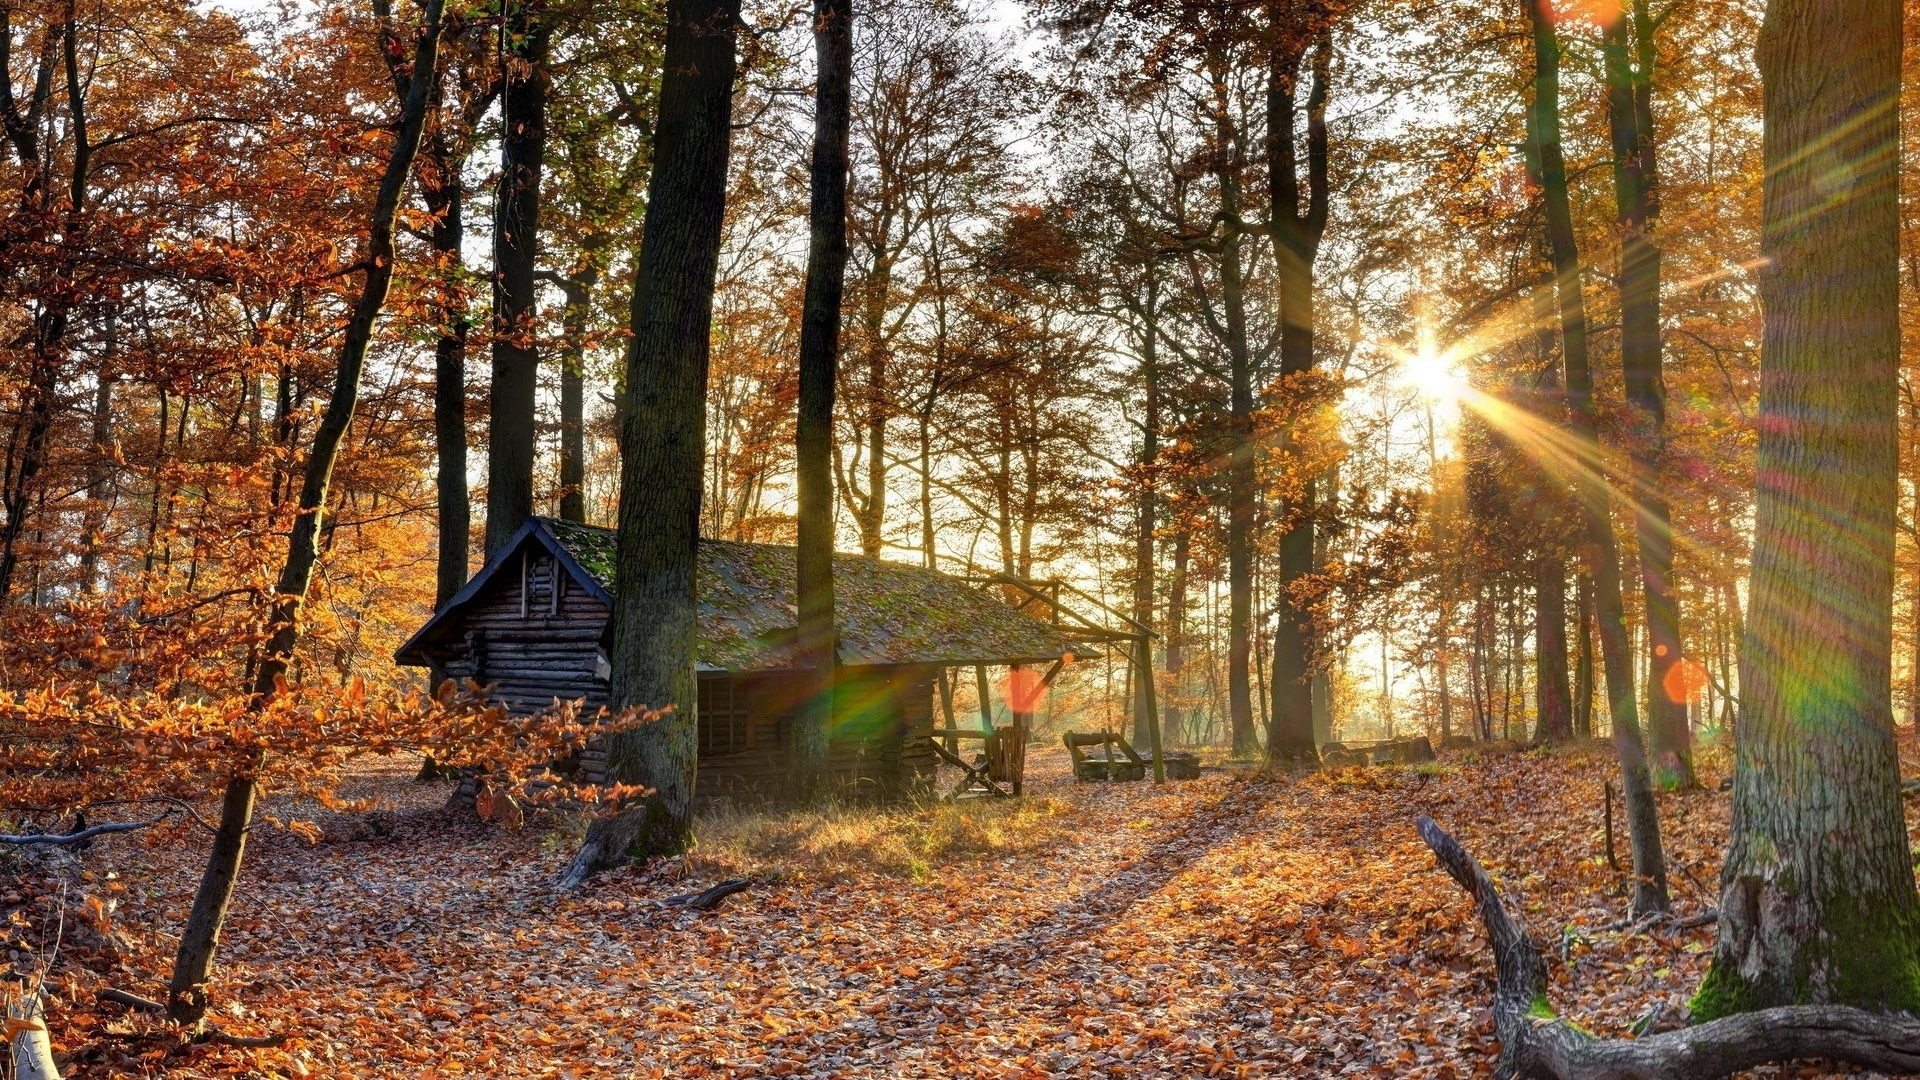 Trees – Landscape Rustic Tree Cabin Nature Autumn Forest Woods Hd Green  Wallpaper Free Download for